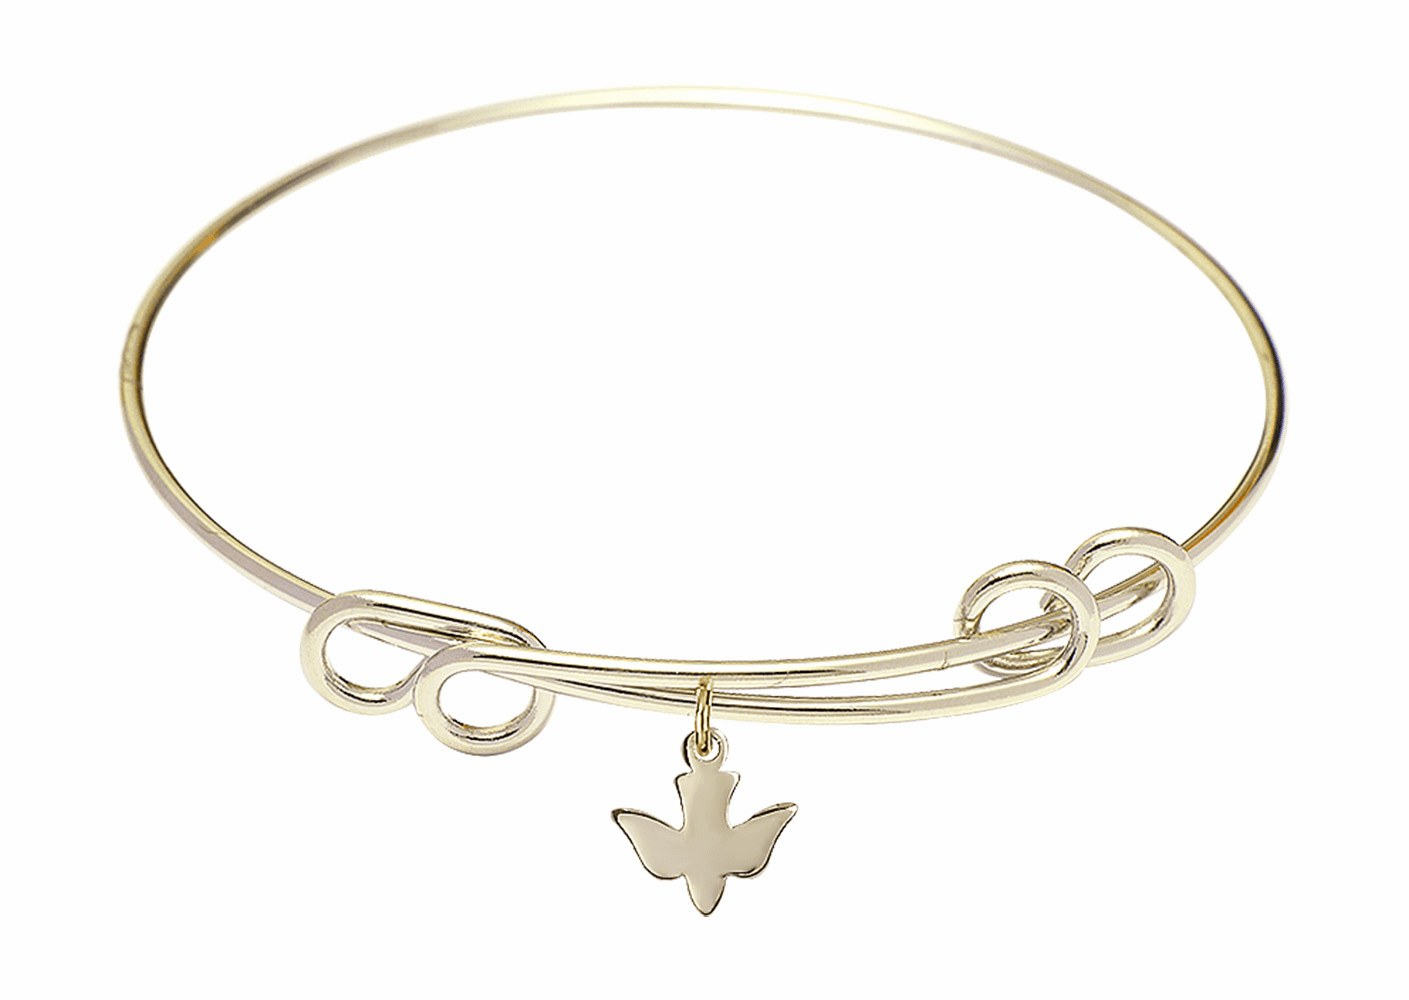 Round Double Loop Bangle Bracelet w/Holy Confirmation Dove 14kt Gold-filled Charm by Bliss Mfg